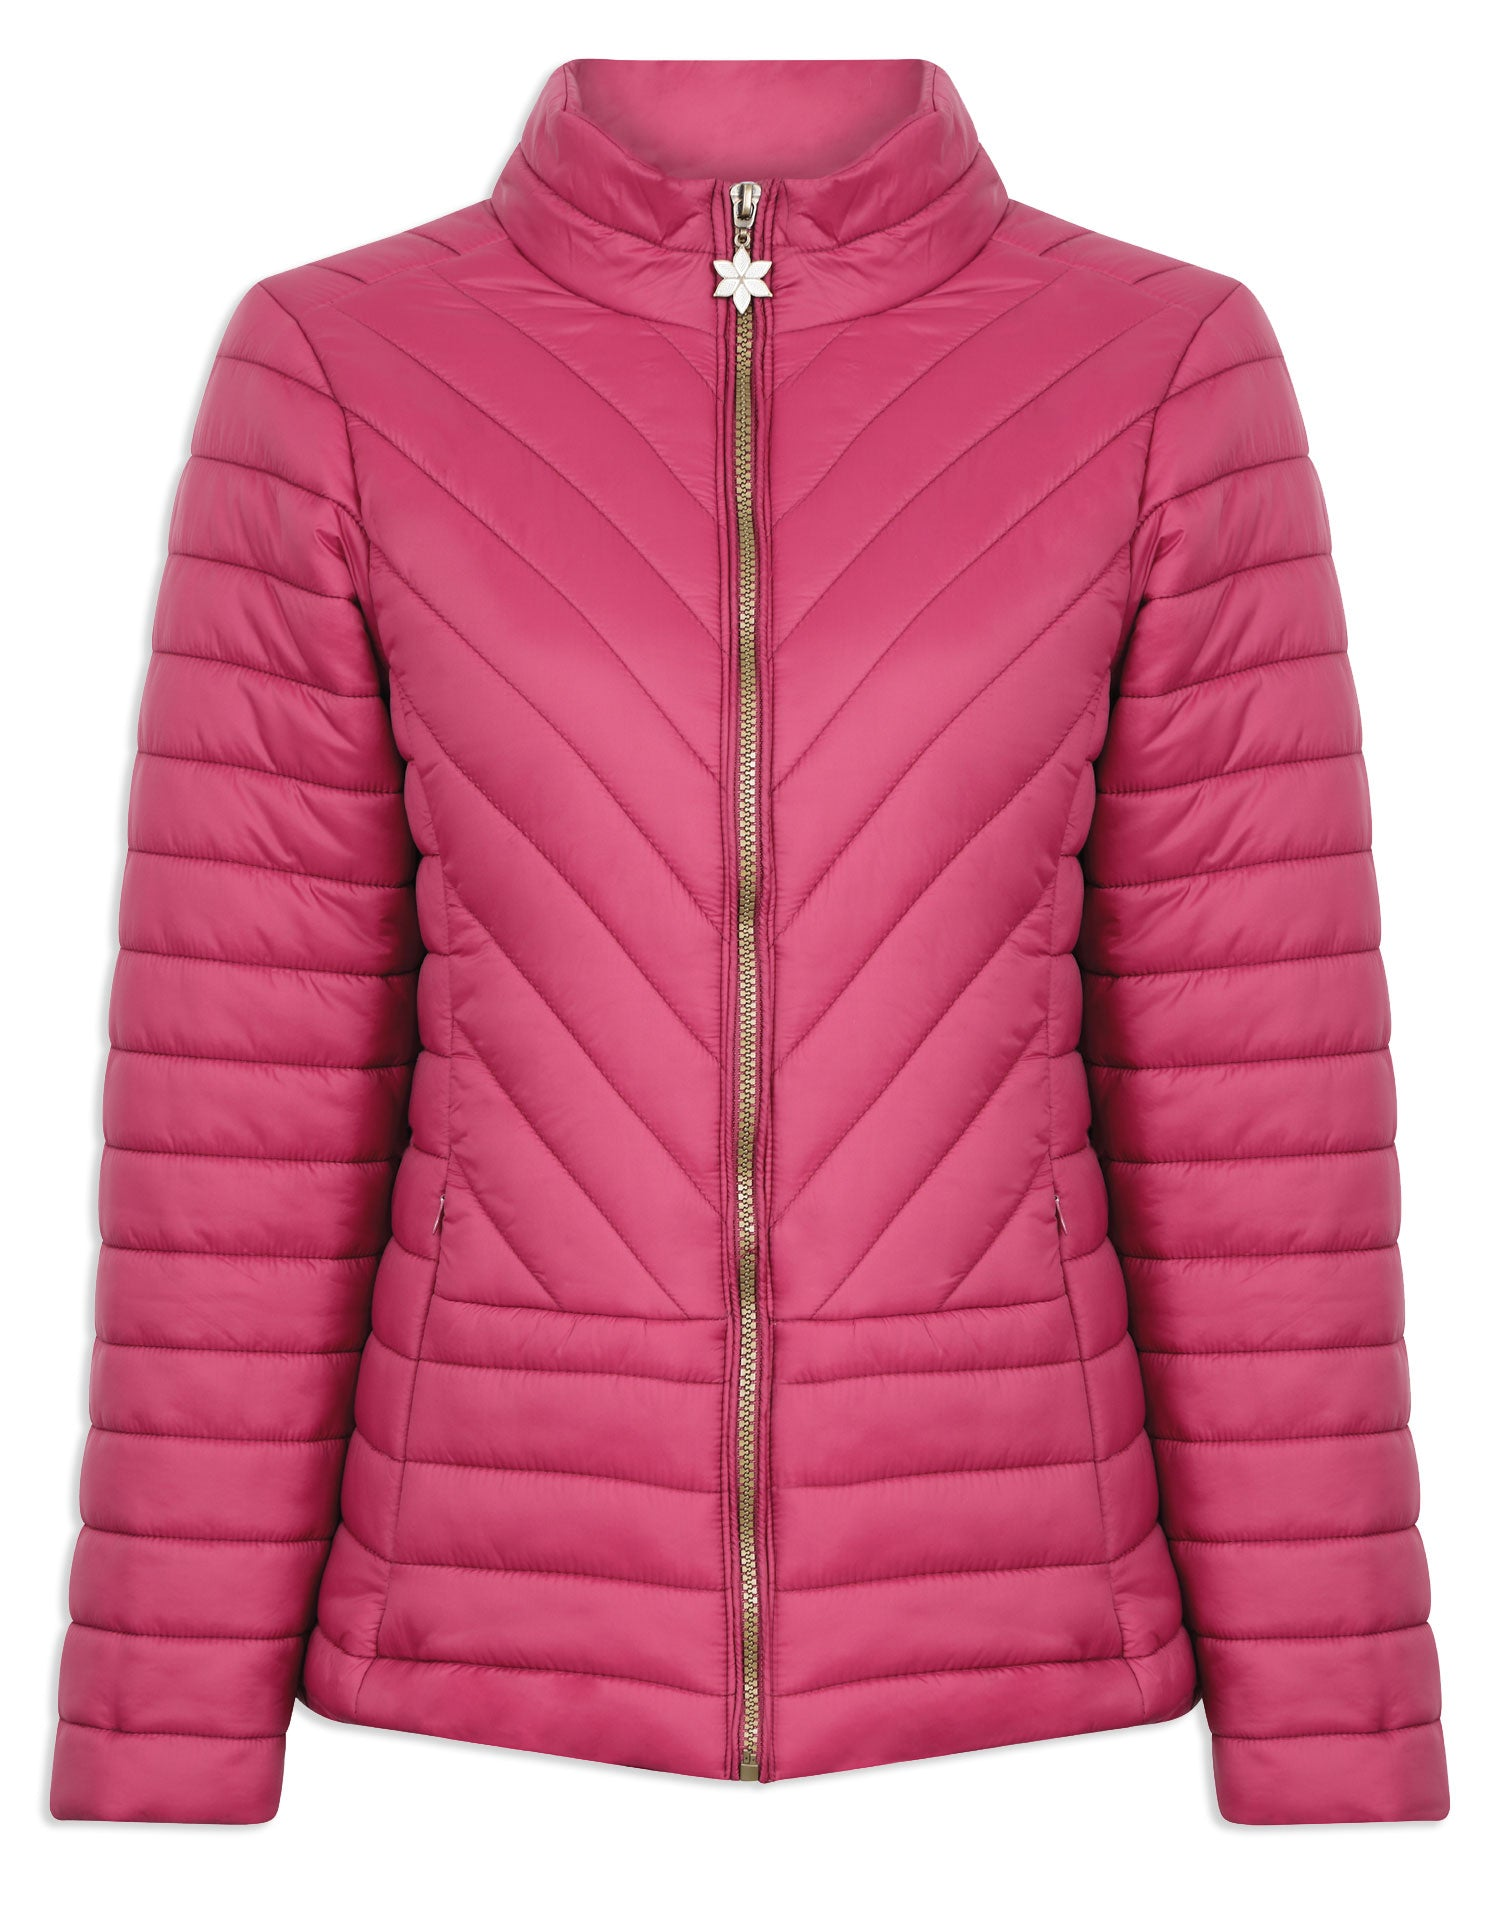 Raspberry Champion Frimley Baffle Quilted Jacket